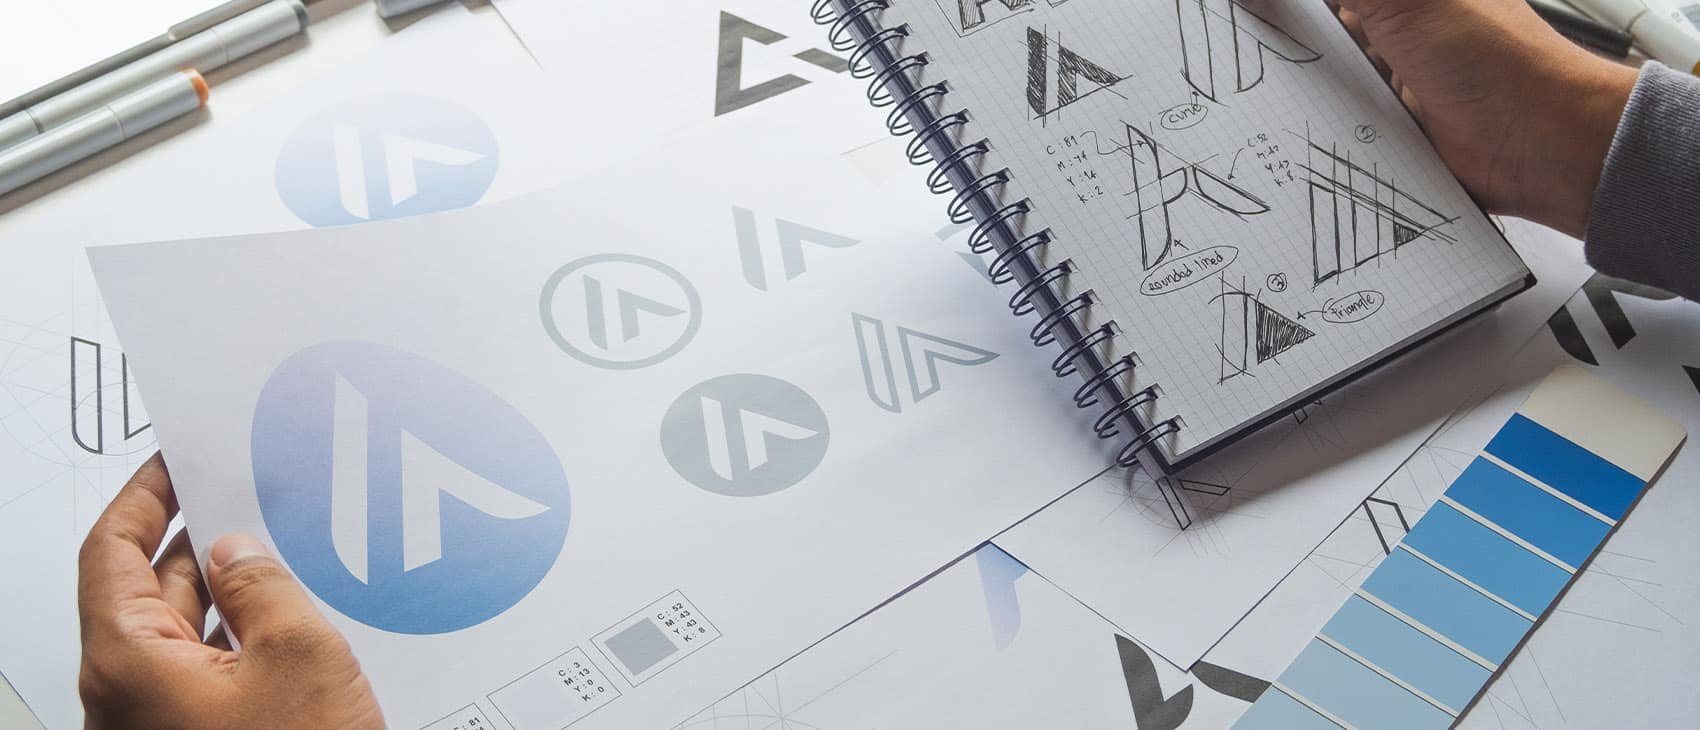 Logo Design And Creative Branding